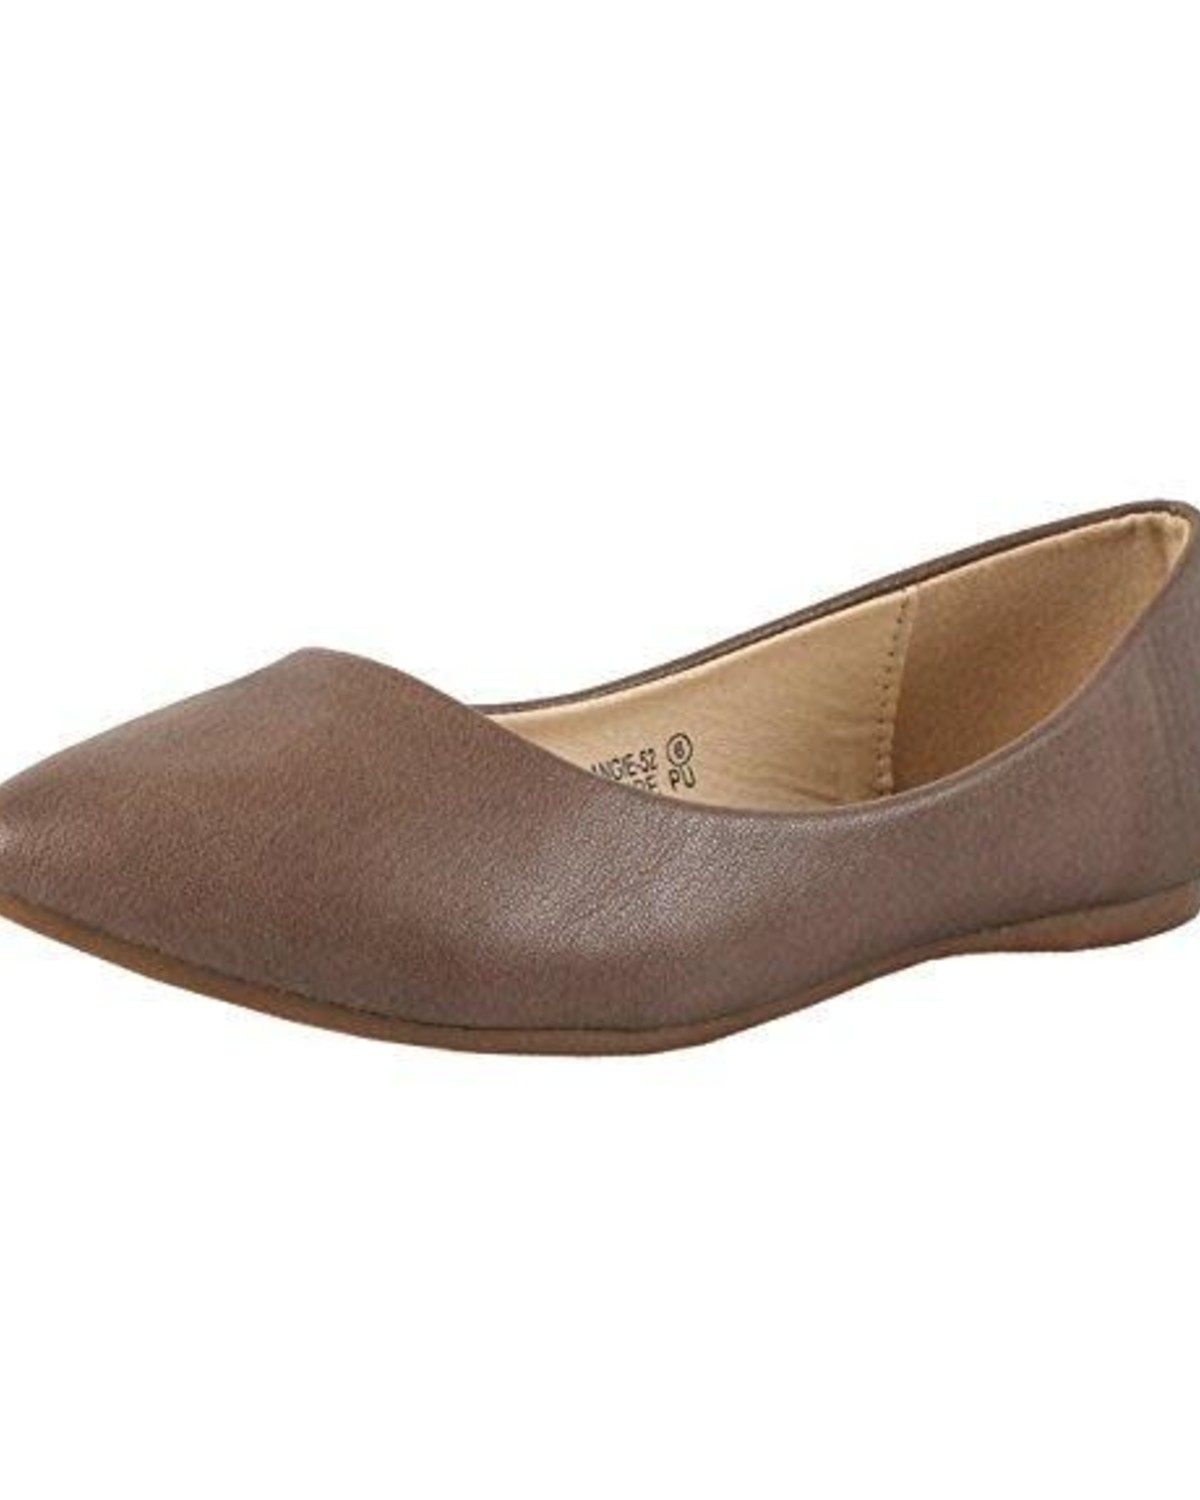 Simple Walks Flats - Taupe